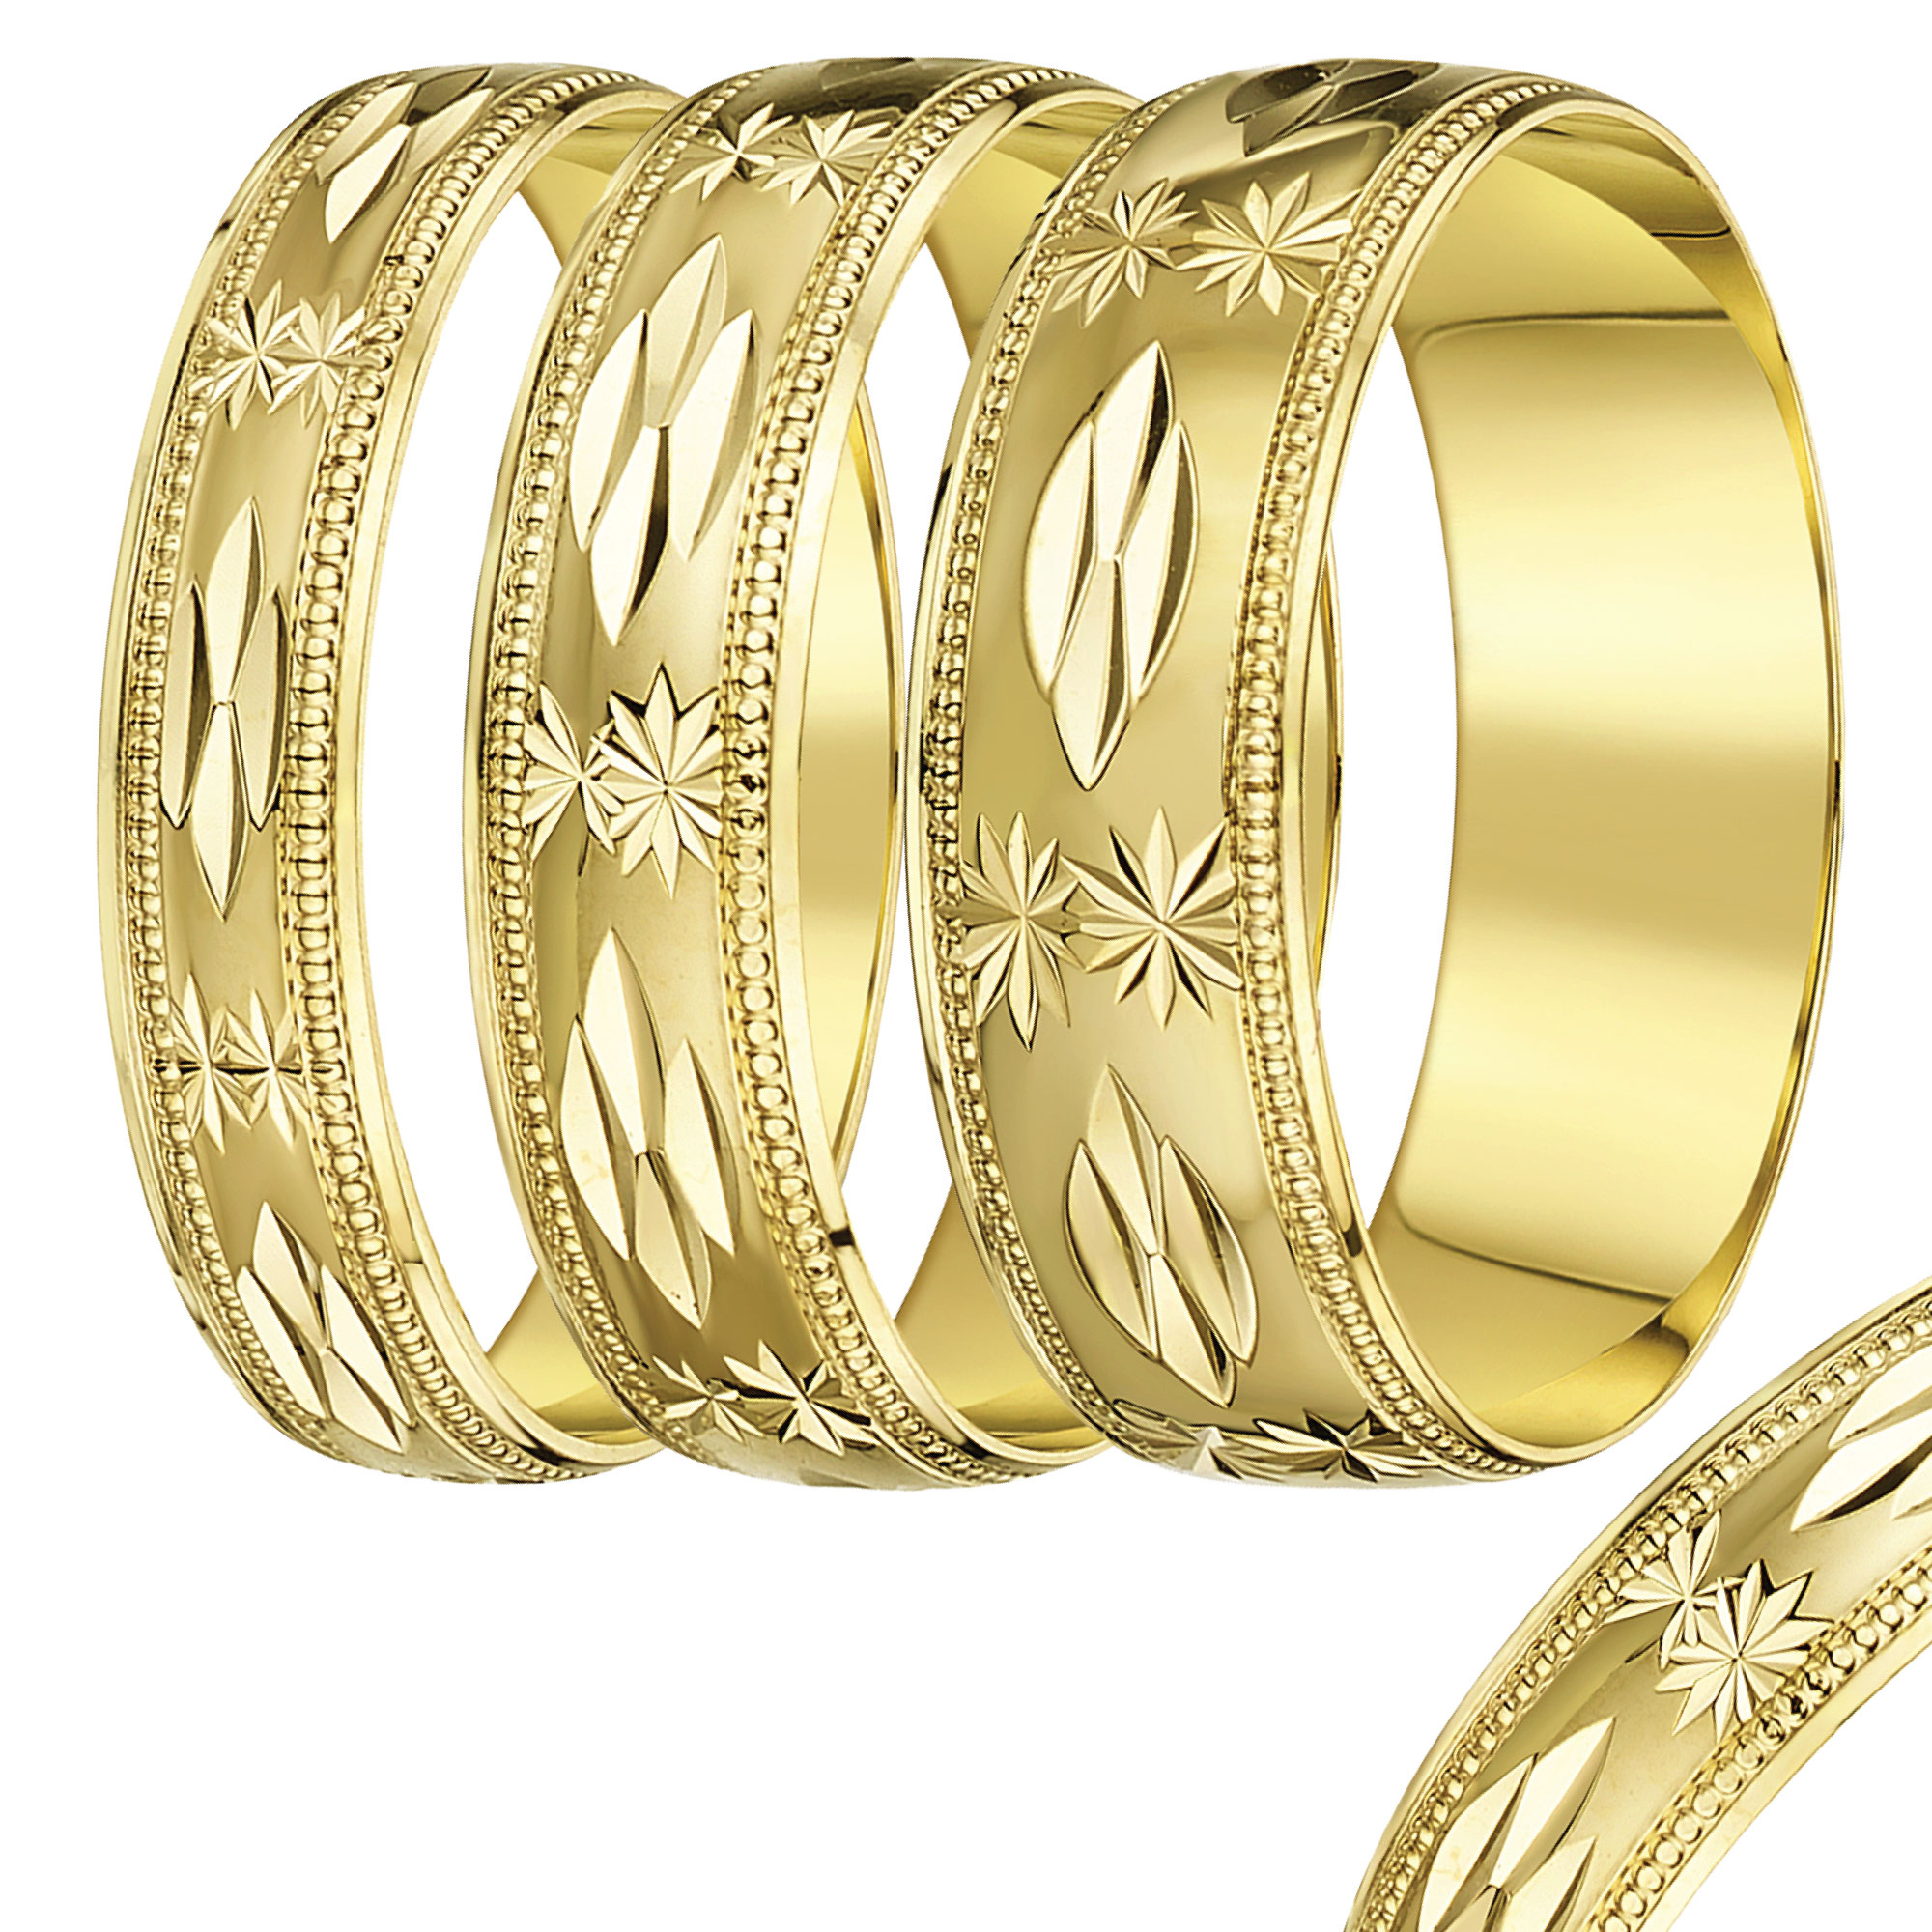 4mm-7mm Yellow Gold Star & Leaf wedding rind band